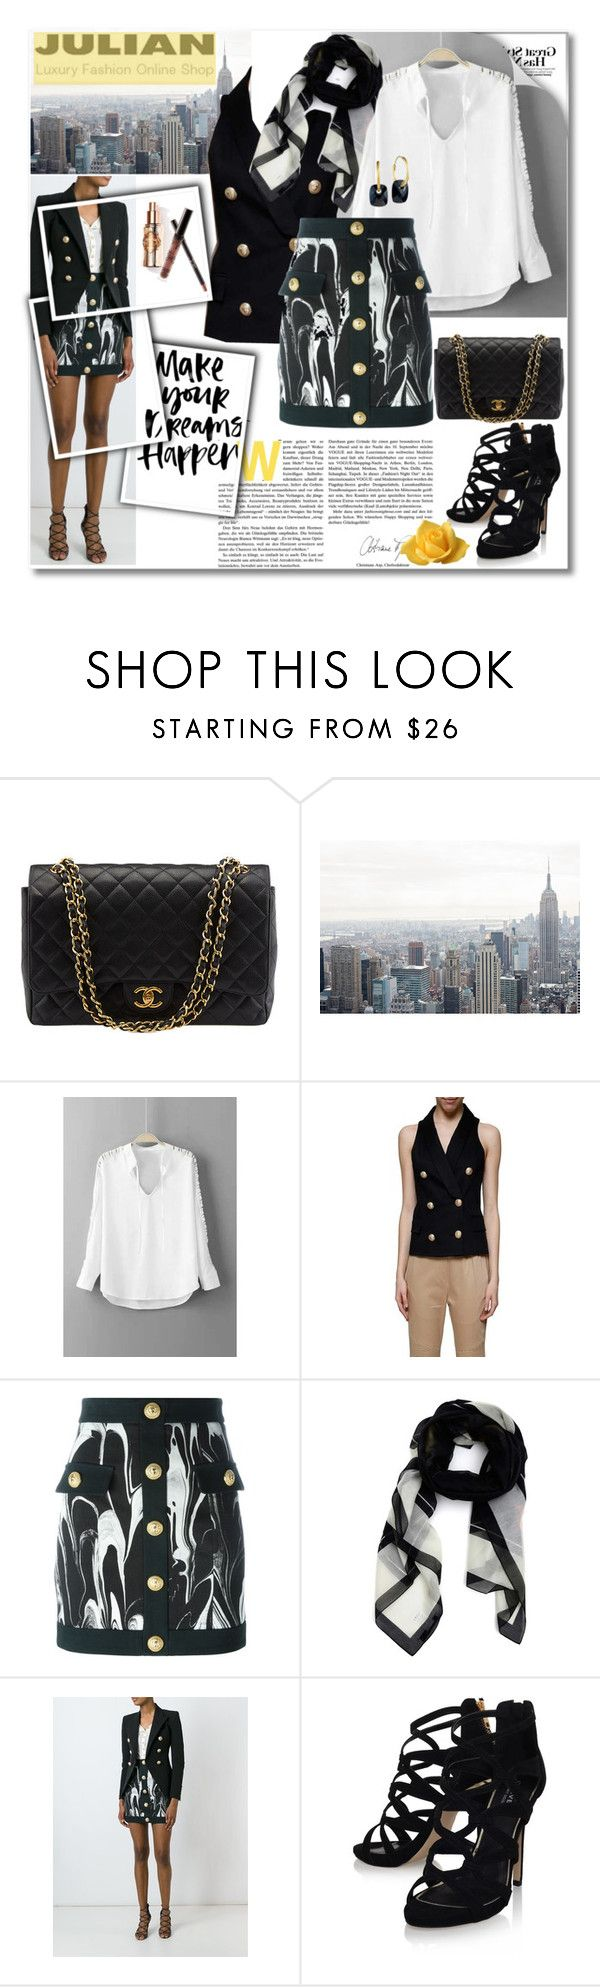 """""""JULIAN FASHION: Contest with prize"""" by andrea2andare ❤ liked on Polyvore featuring Chanel, Balmain, Givenchy, Carvela Kurt Geiger, Didi Jewellery and Julian"""